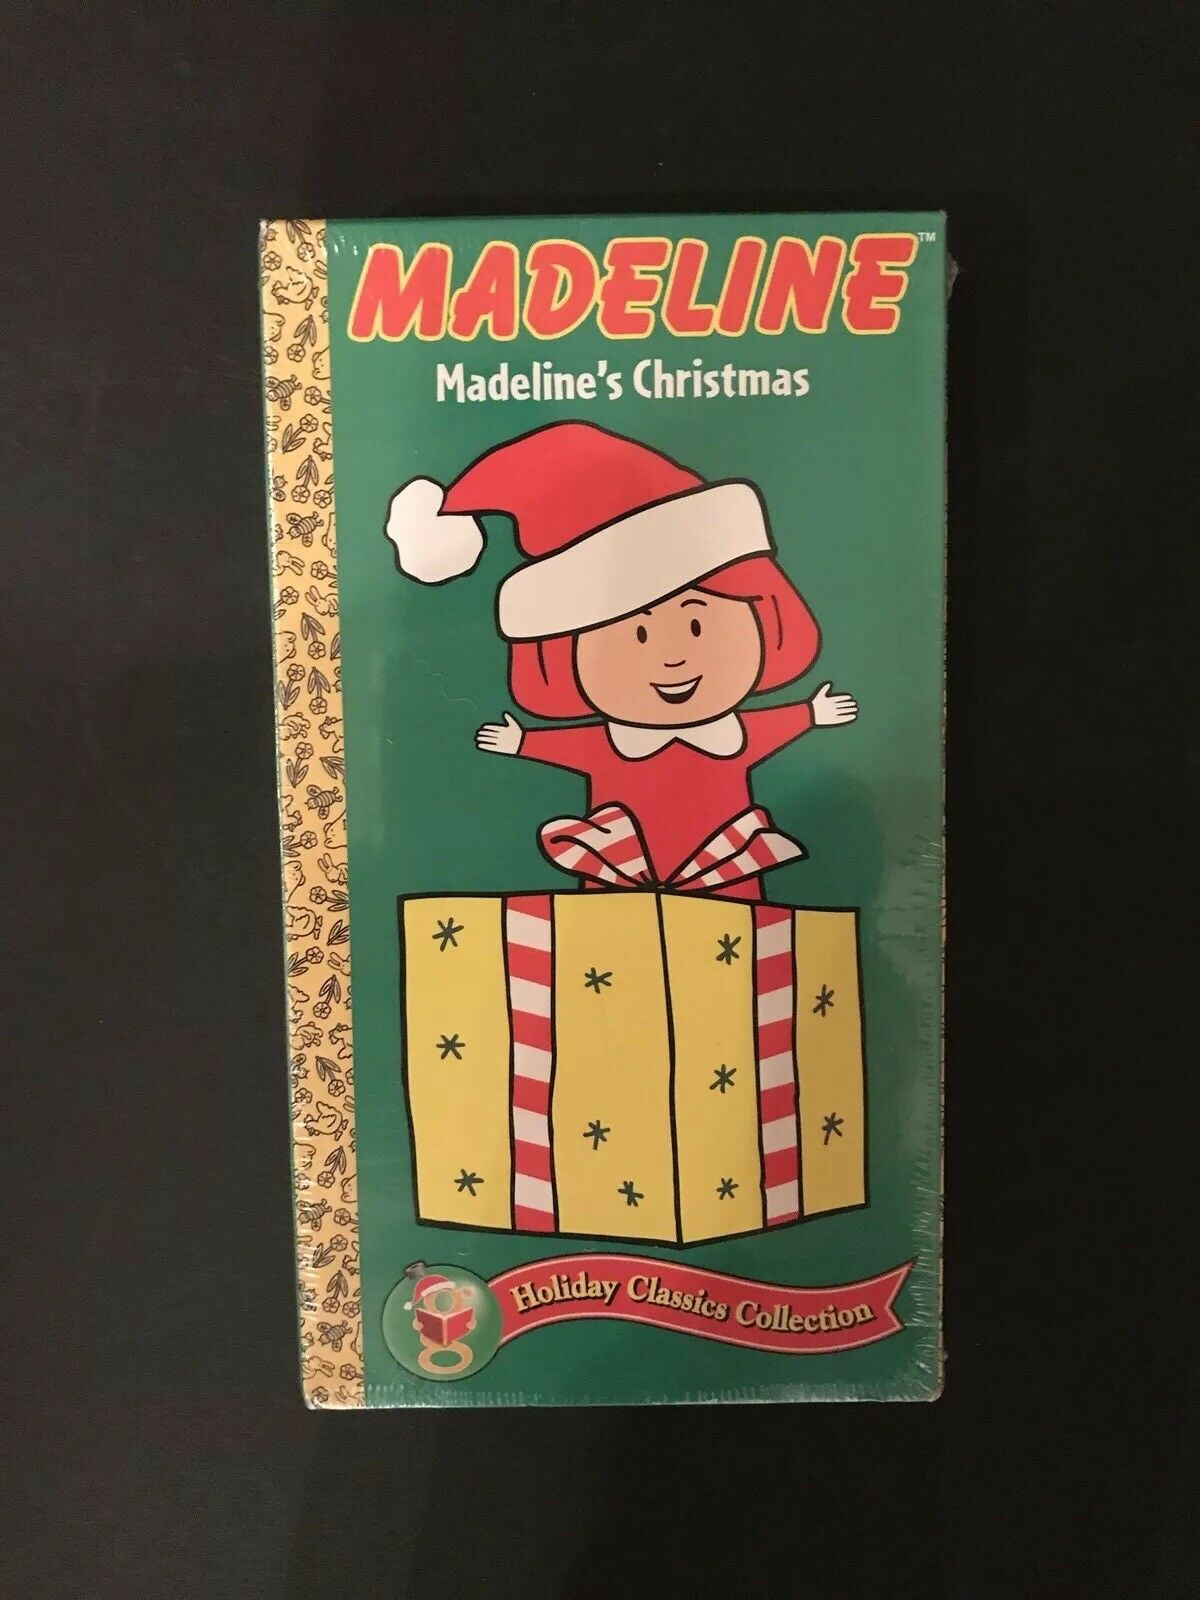 Madeline: Madeline's Christmas (Golden Books Family Entertainment)